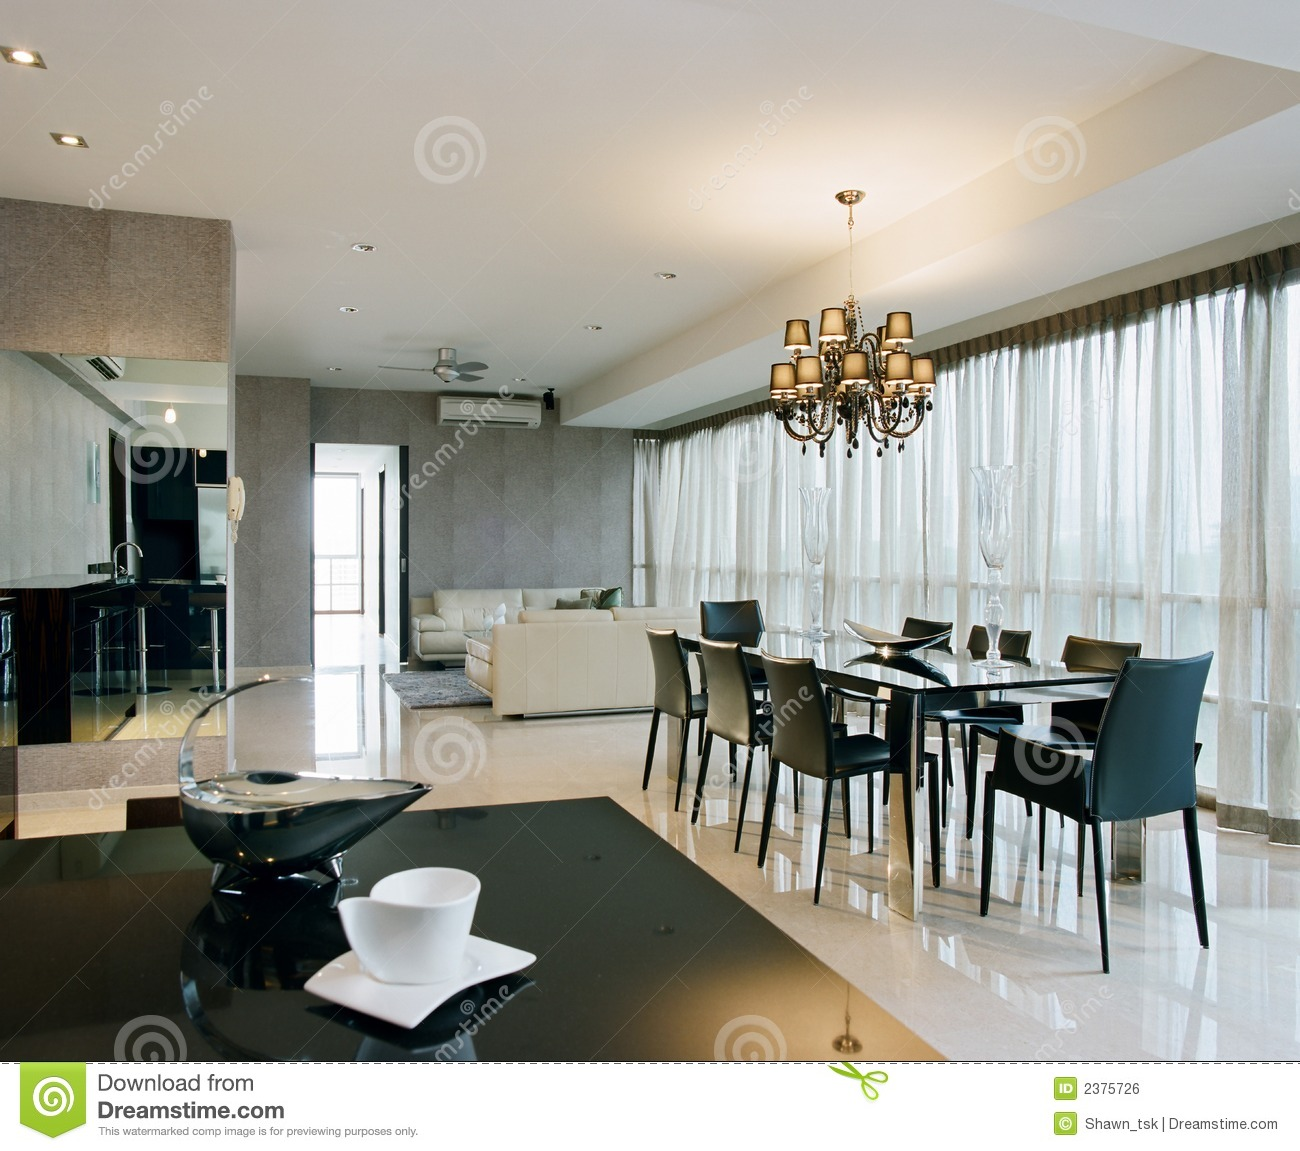 Interior design dining area stock photo image 2375726 for Interior design for kitchen and dining